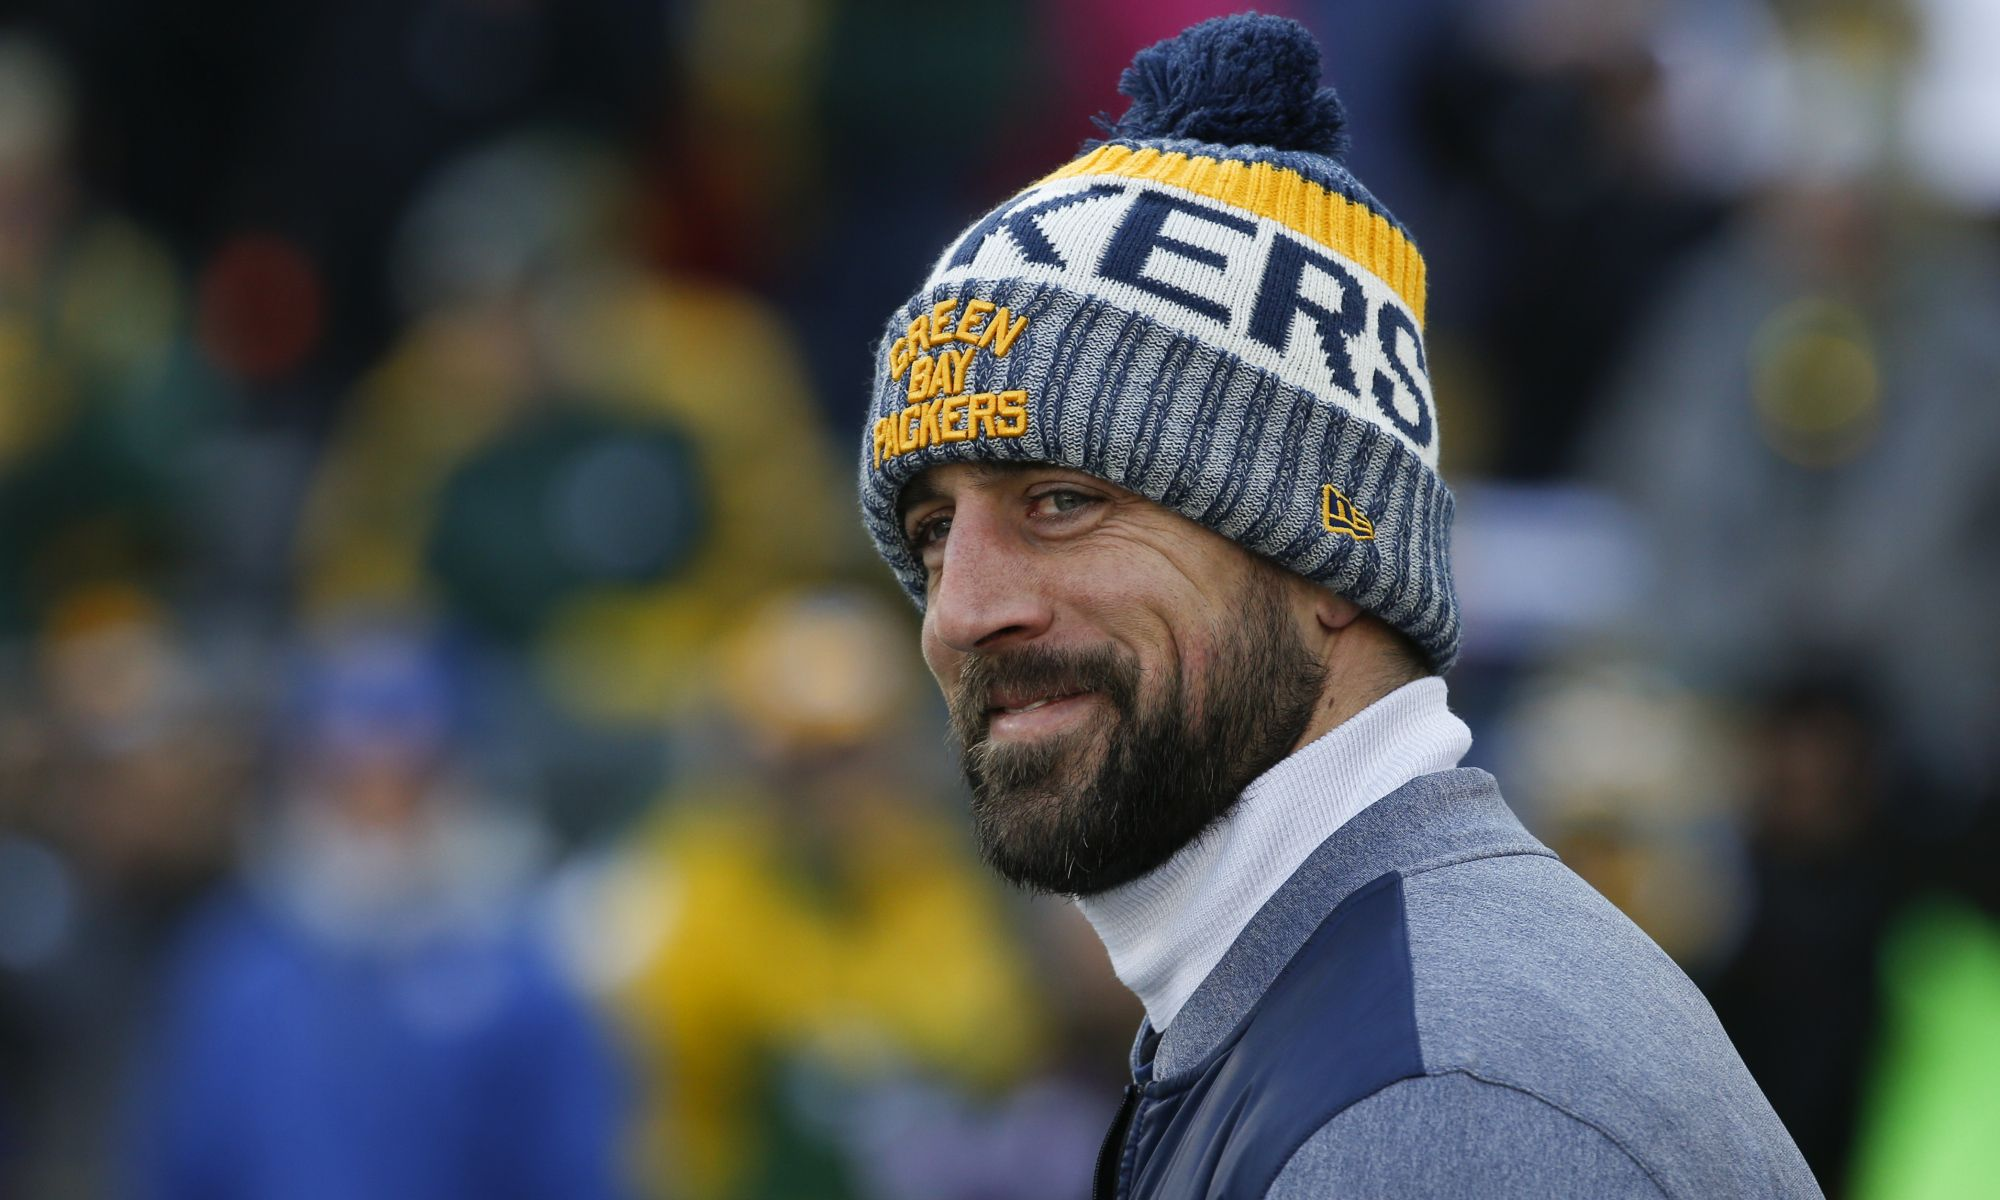 Aaron Rodgers' cute Thanksgiving cleats have tiny pumpkins